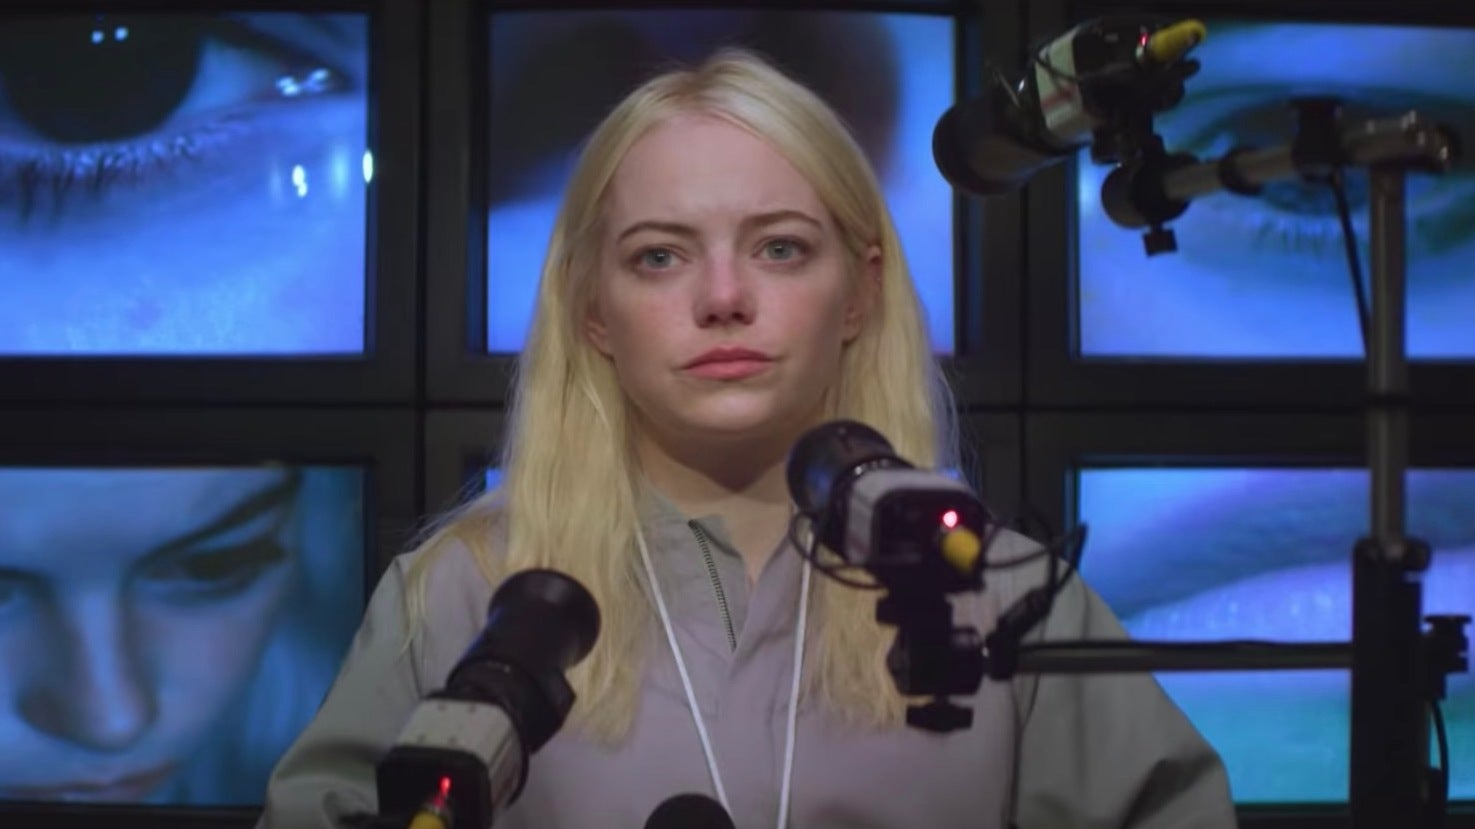 Emma Stone And Jonah Hill Have A Cosmic Connection In A New Look At Netflix'sManiac